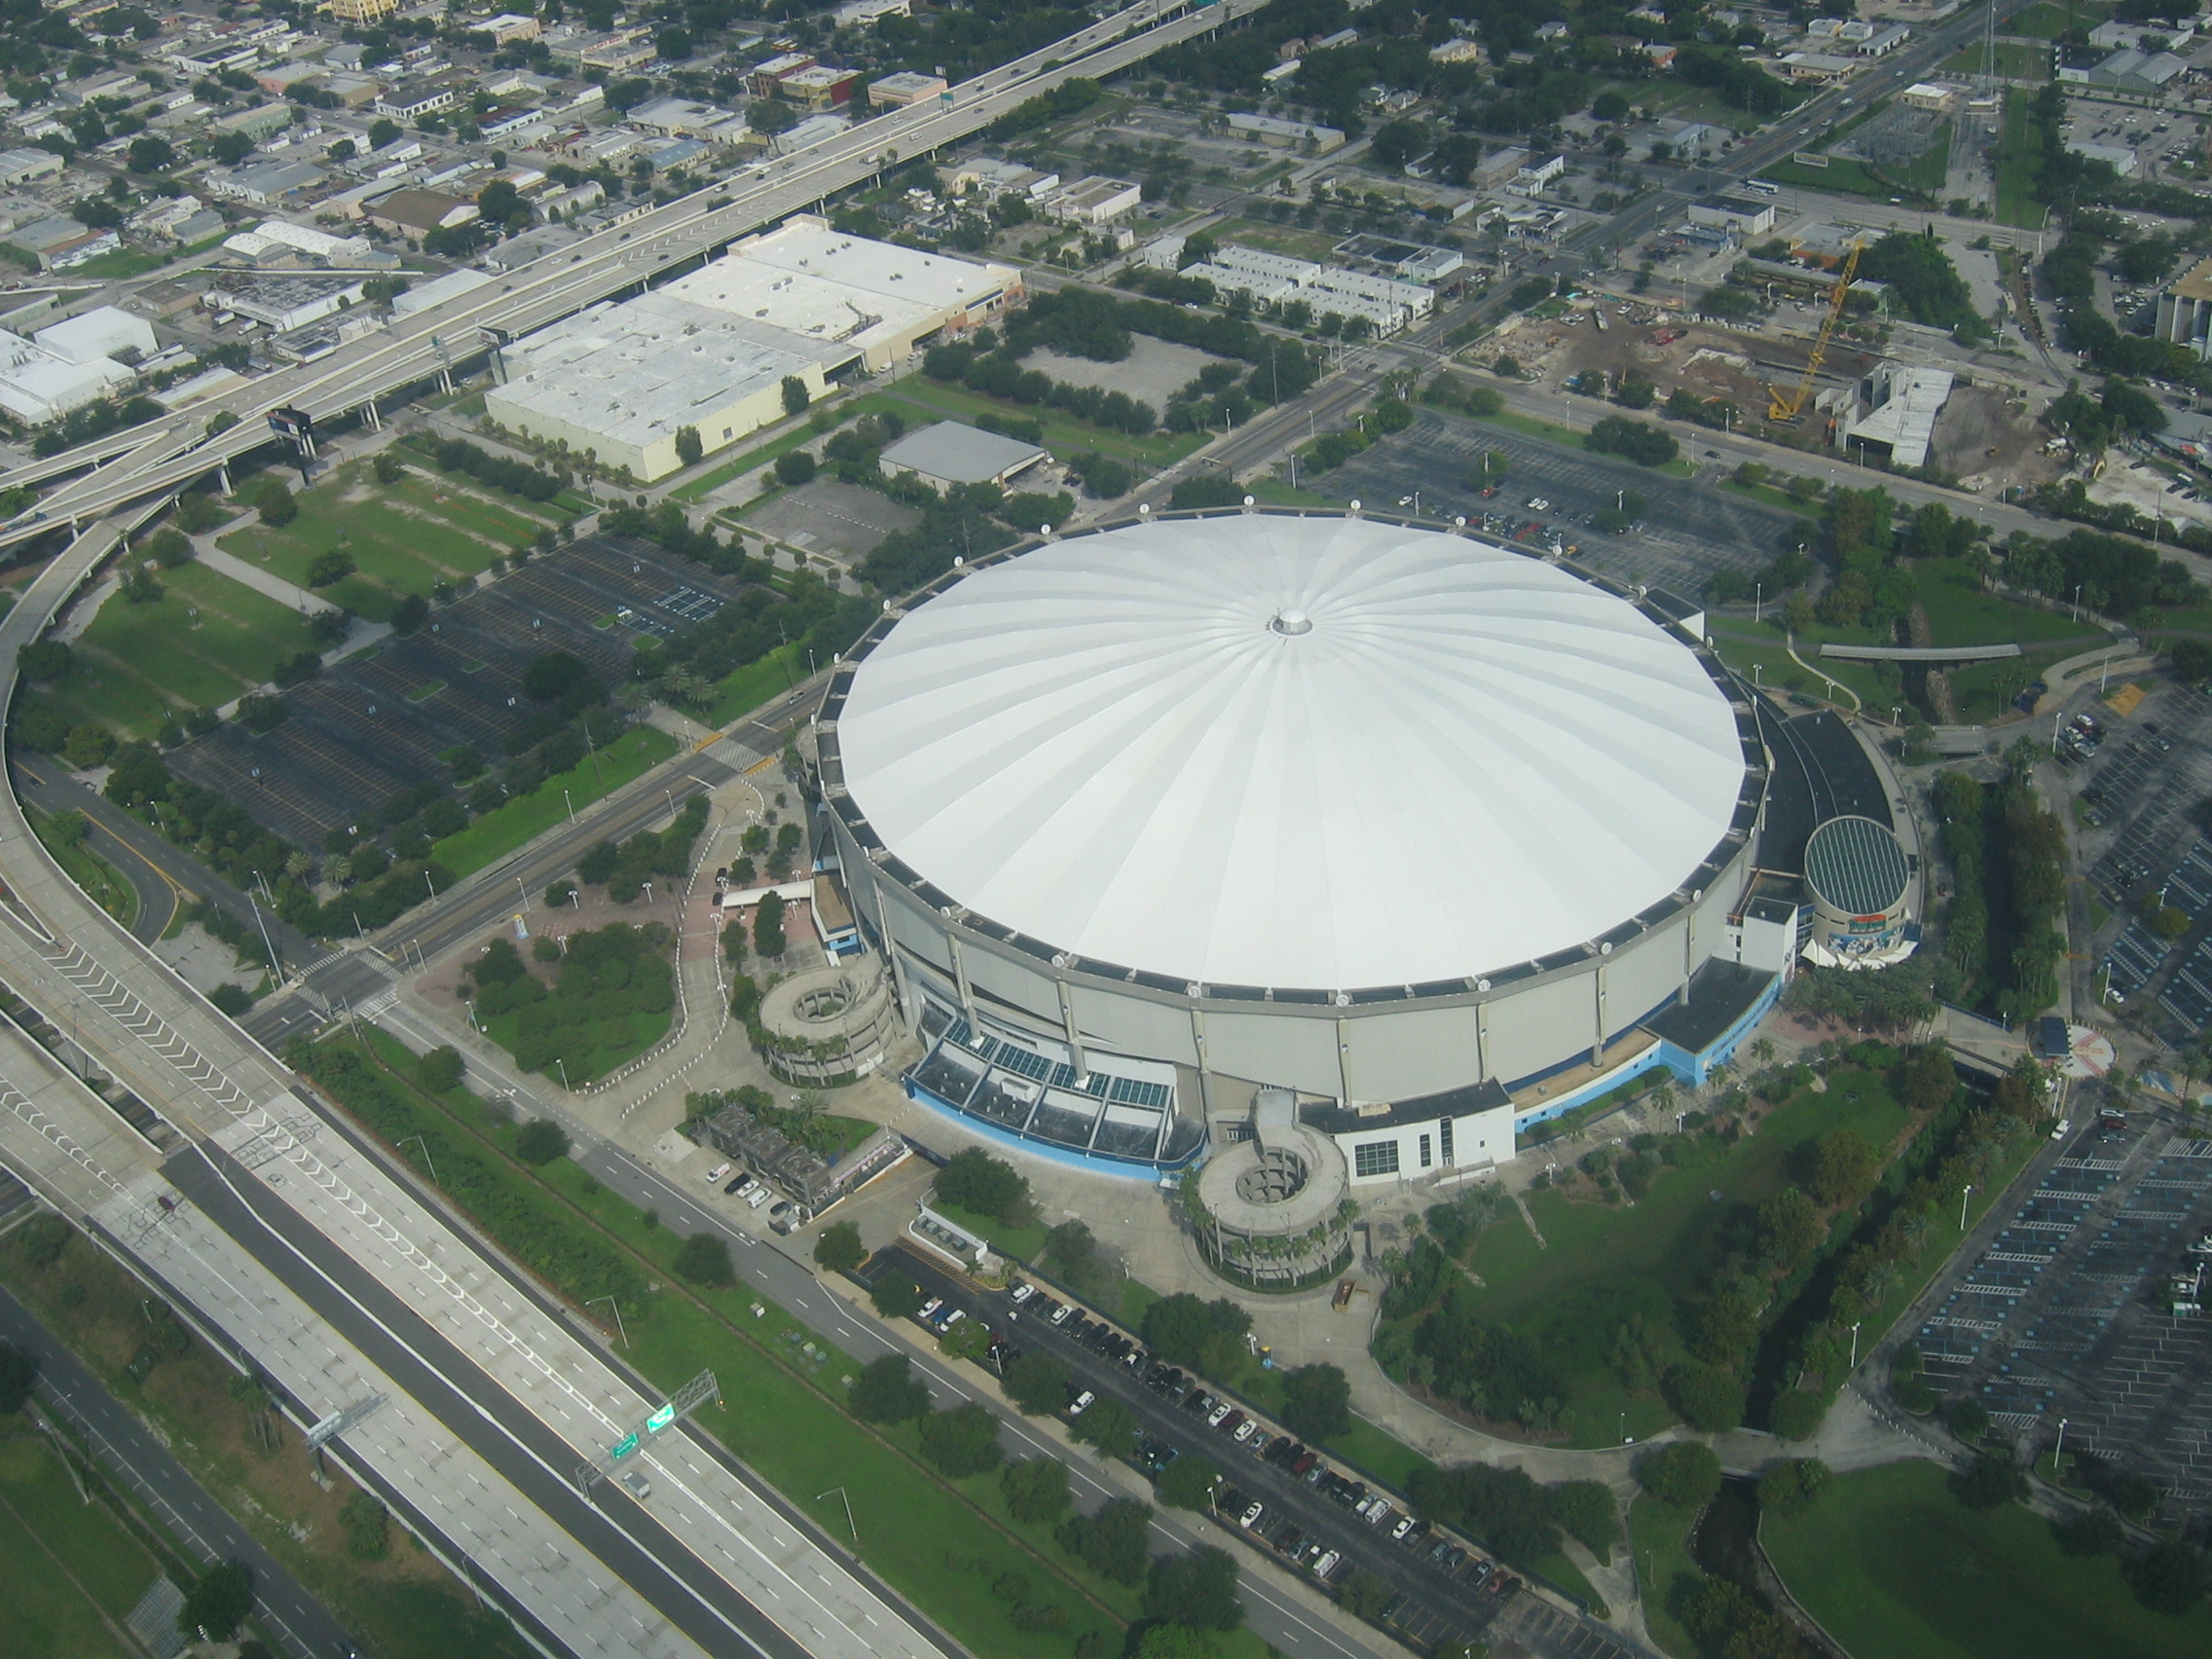 Suncoast Baseball Dome